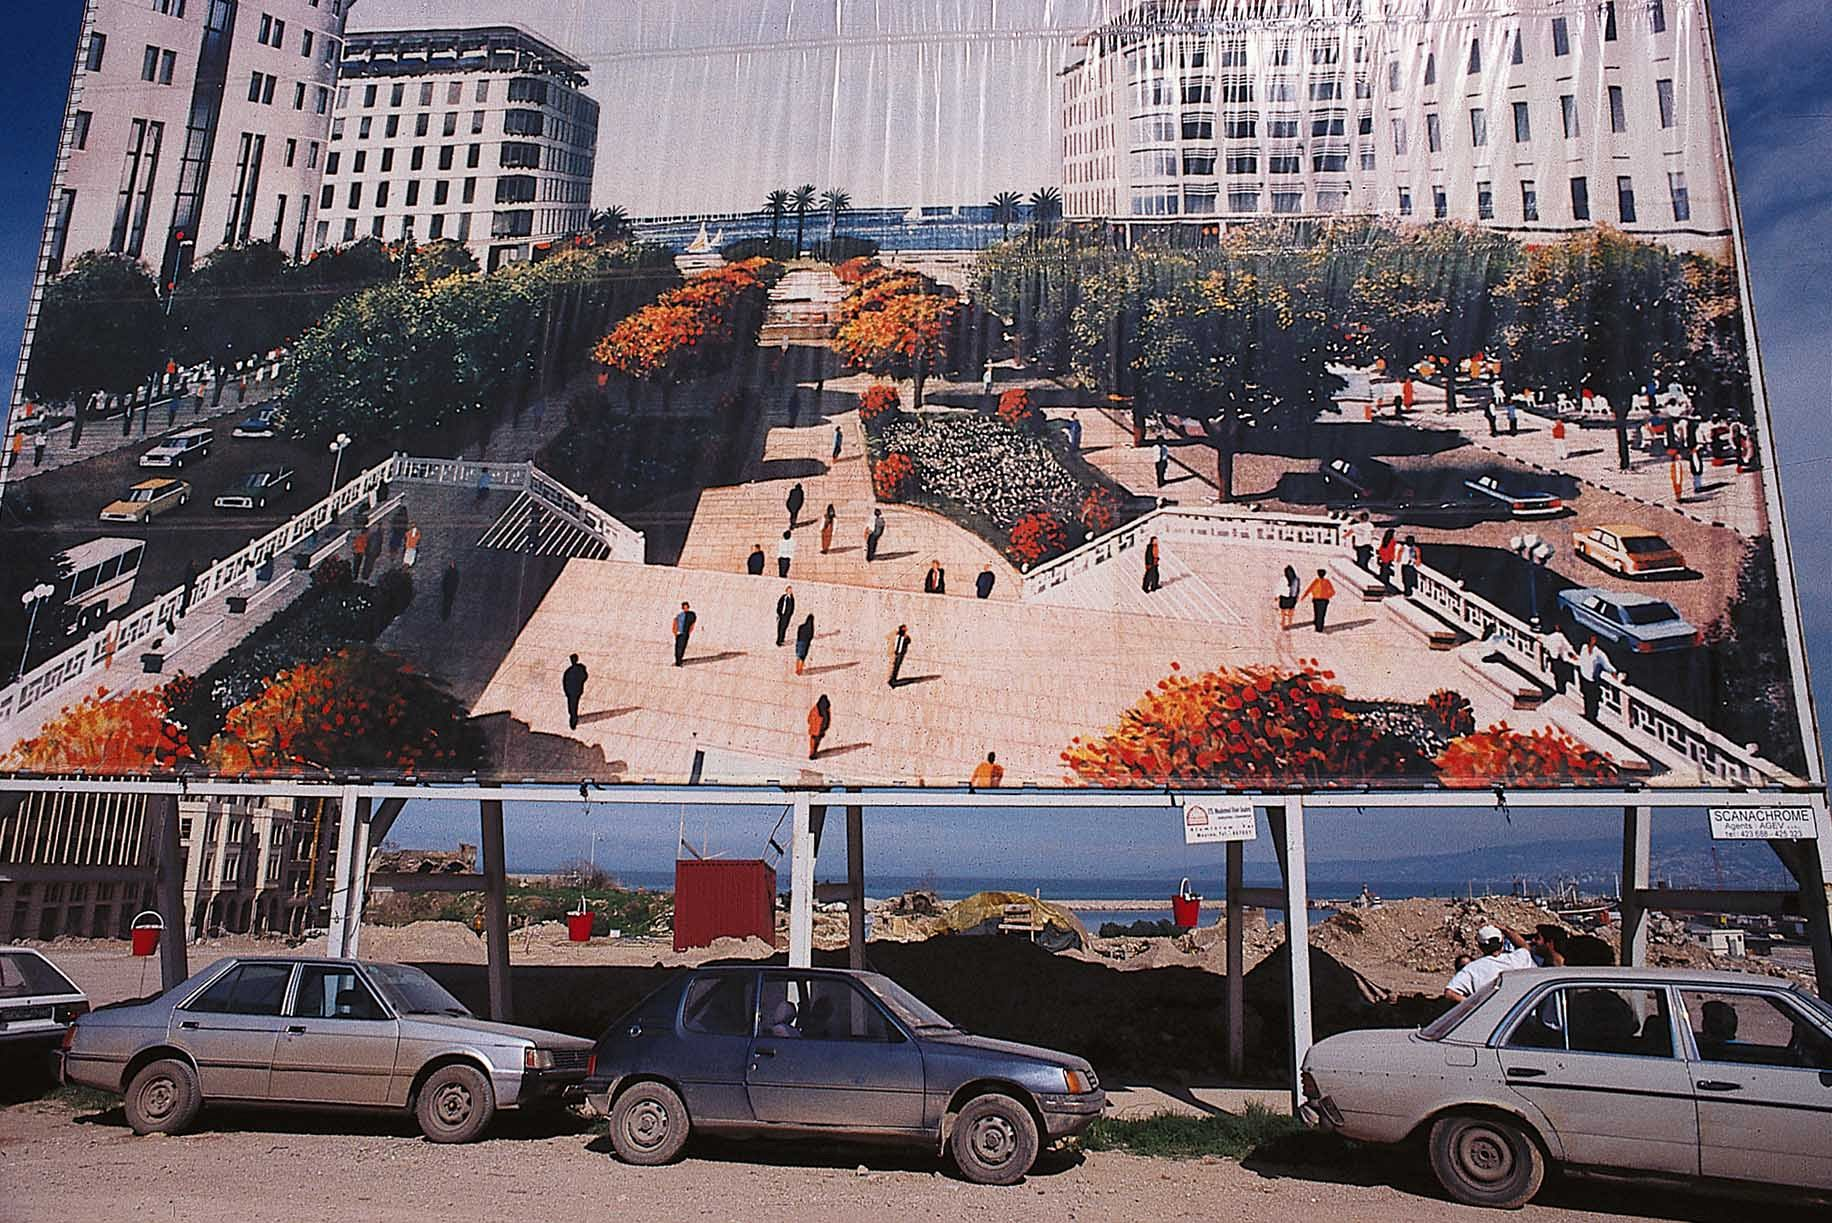 When the centre of Beirut was cleared of debris after the war, the city centre was left empty for a couple of years. The only signs of life were the archaeologists' red plastic buckets. During this time, the city centre only existed as enormous billboards carrying images of a reconstructed future. _Photo: OM._